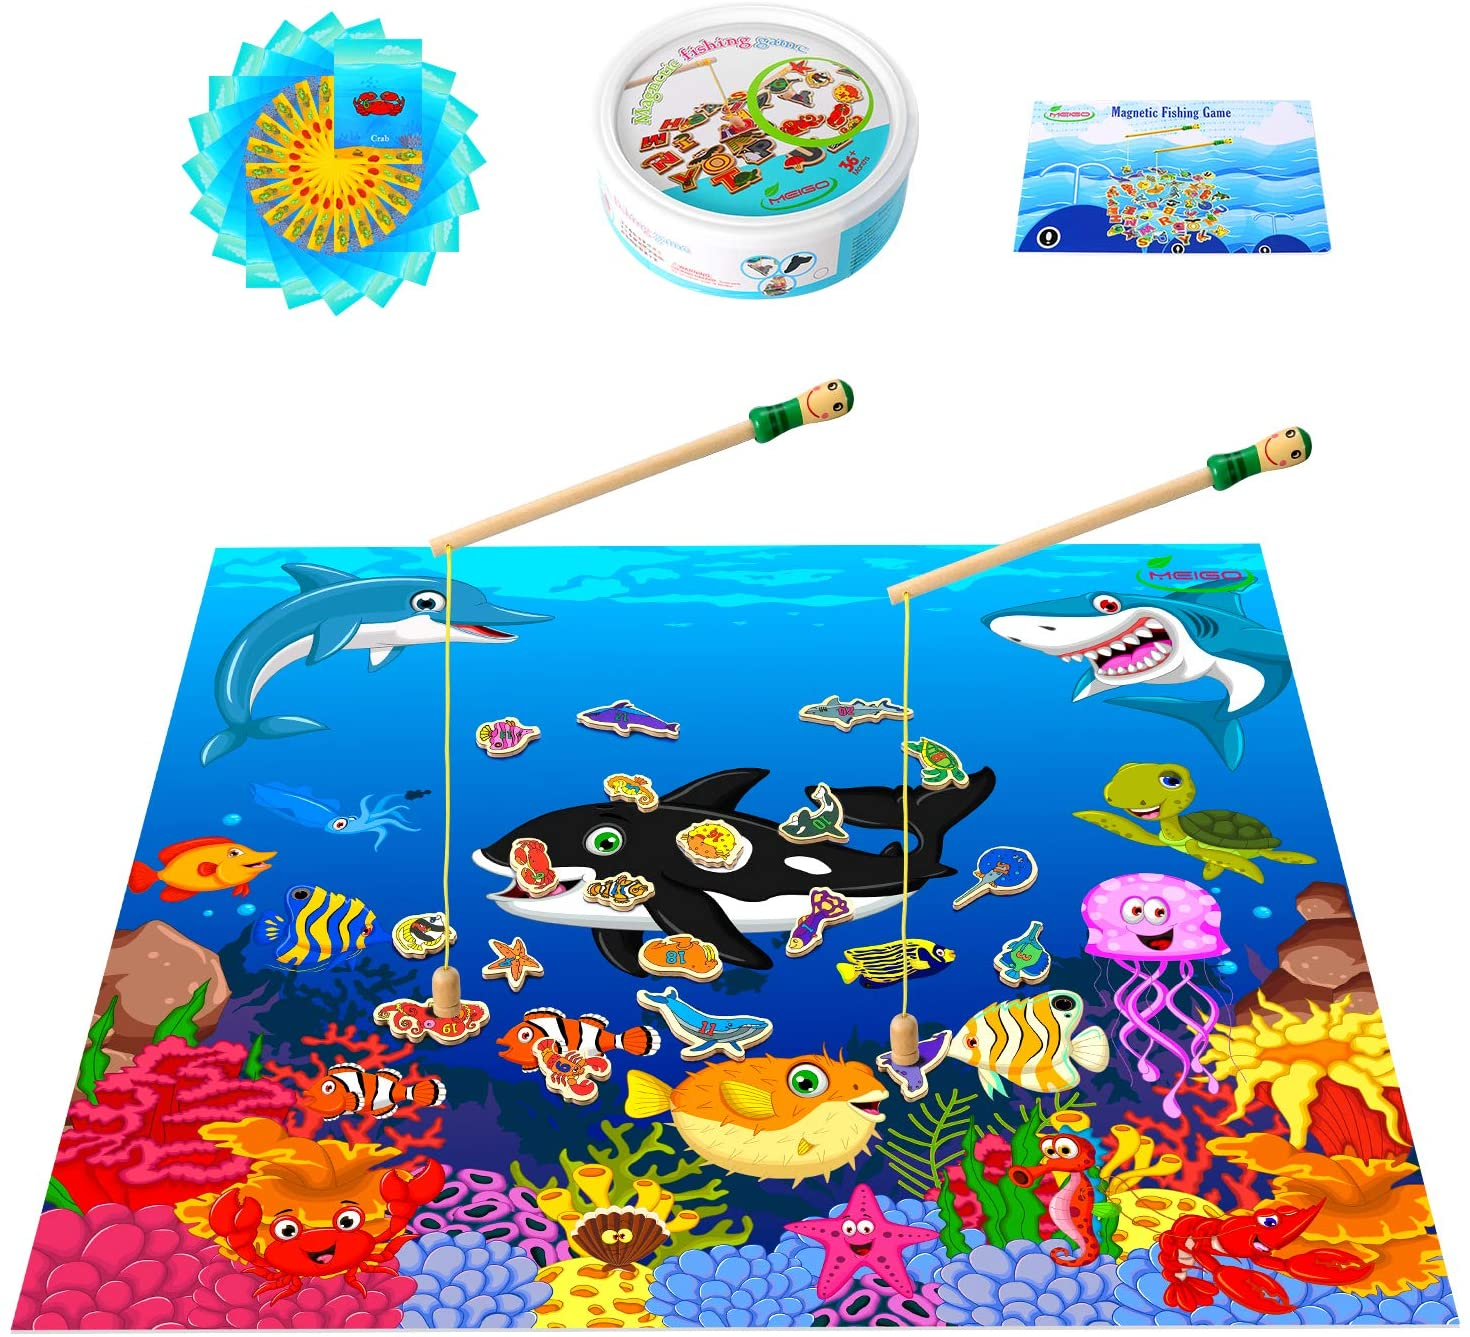 MEIGO Magnetic Wooden Fishing Game - Toddler Alphabet Number Preschool Learning Board Games with Play Mat.jpg